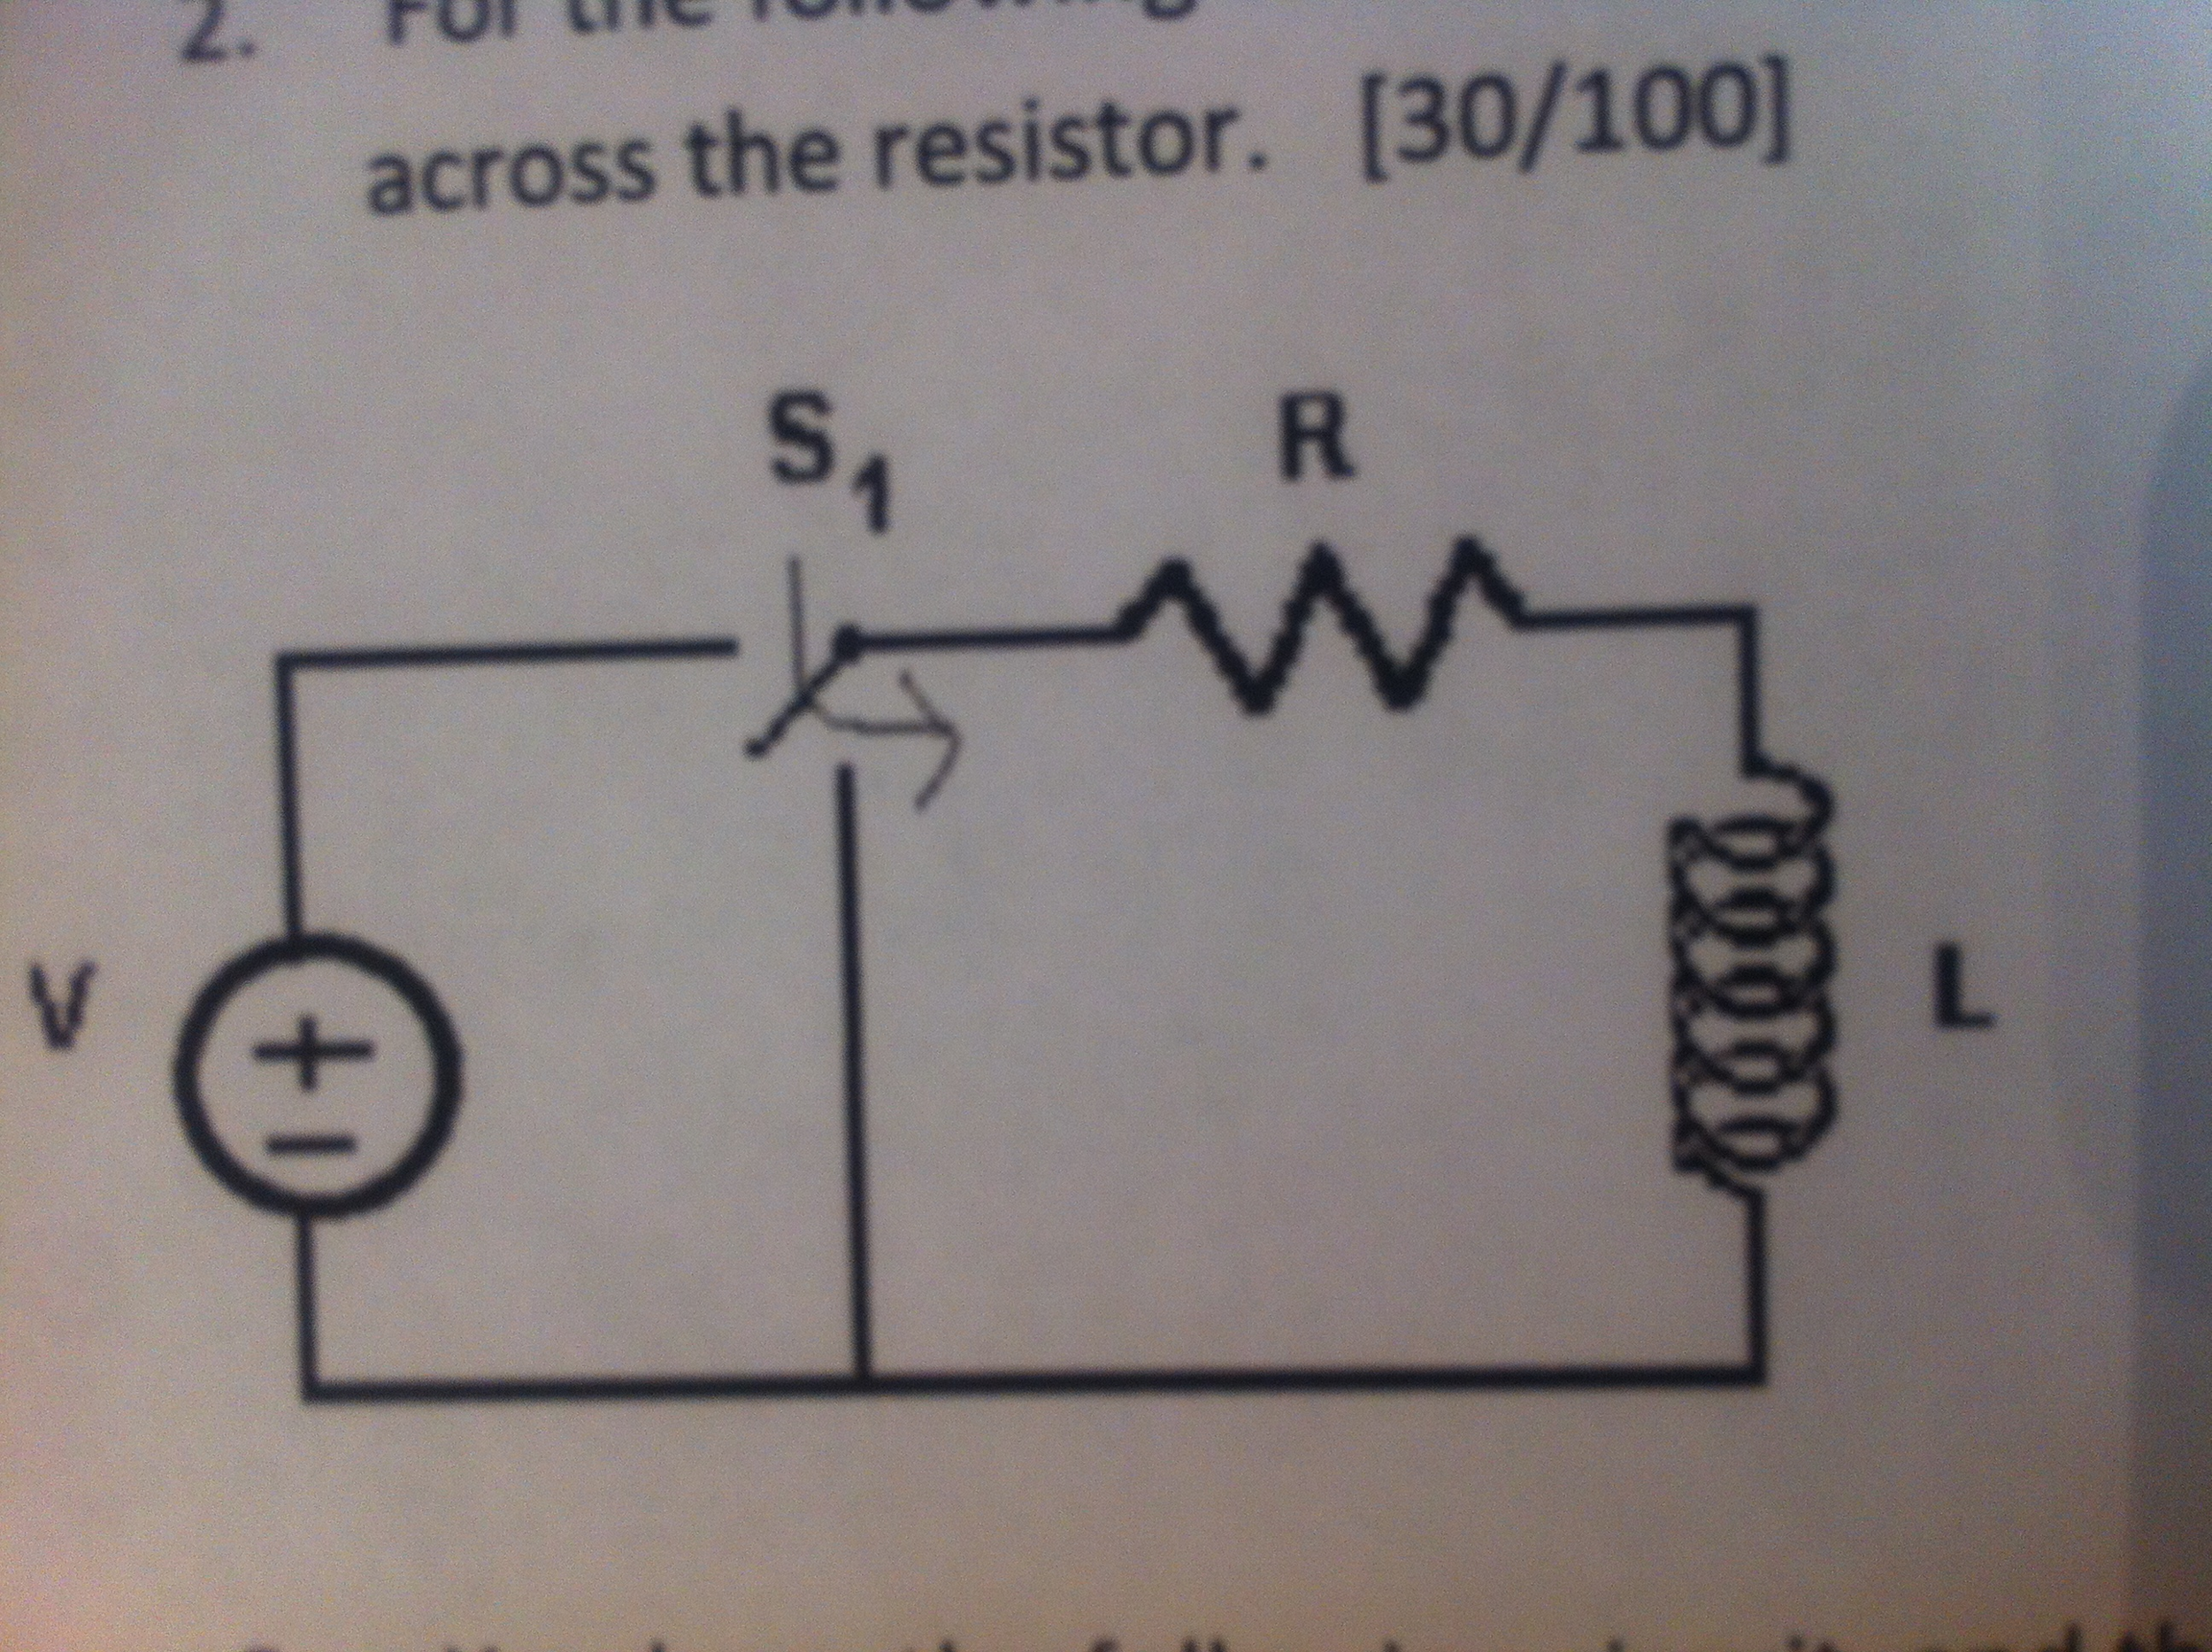 For the following circuit, S1 closes at t=0. L = 2